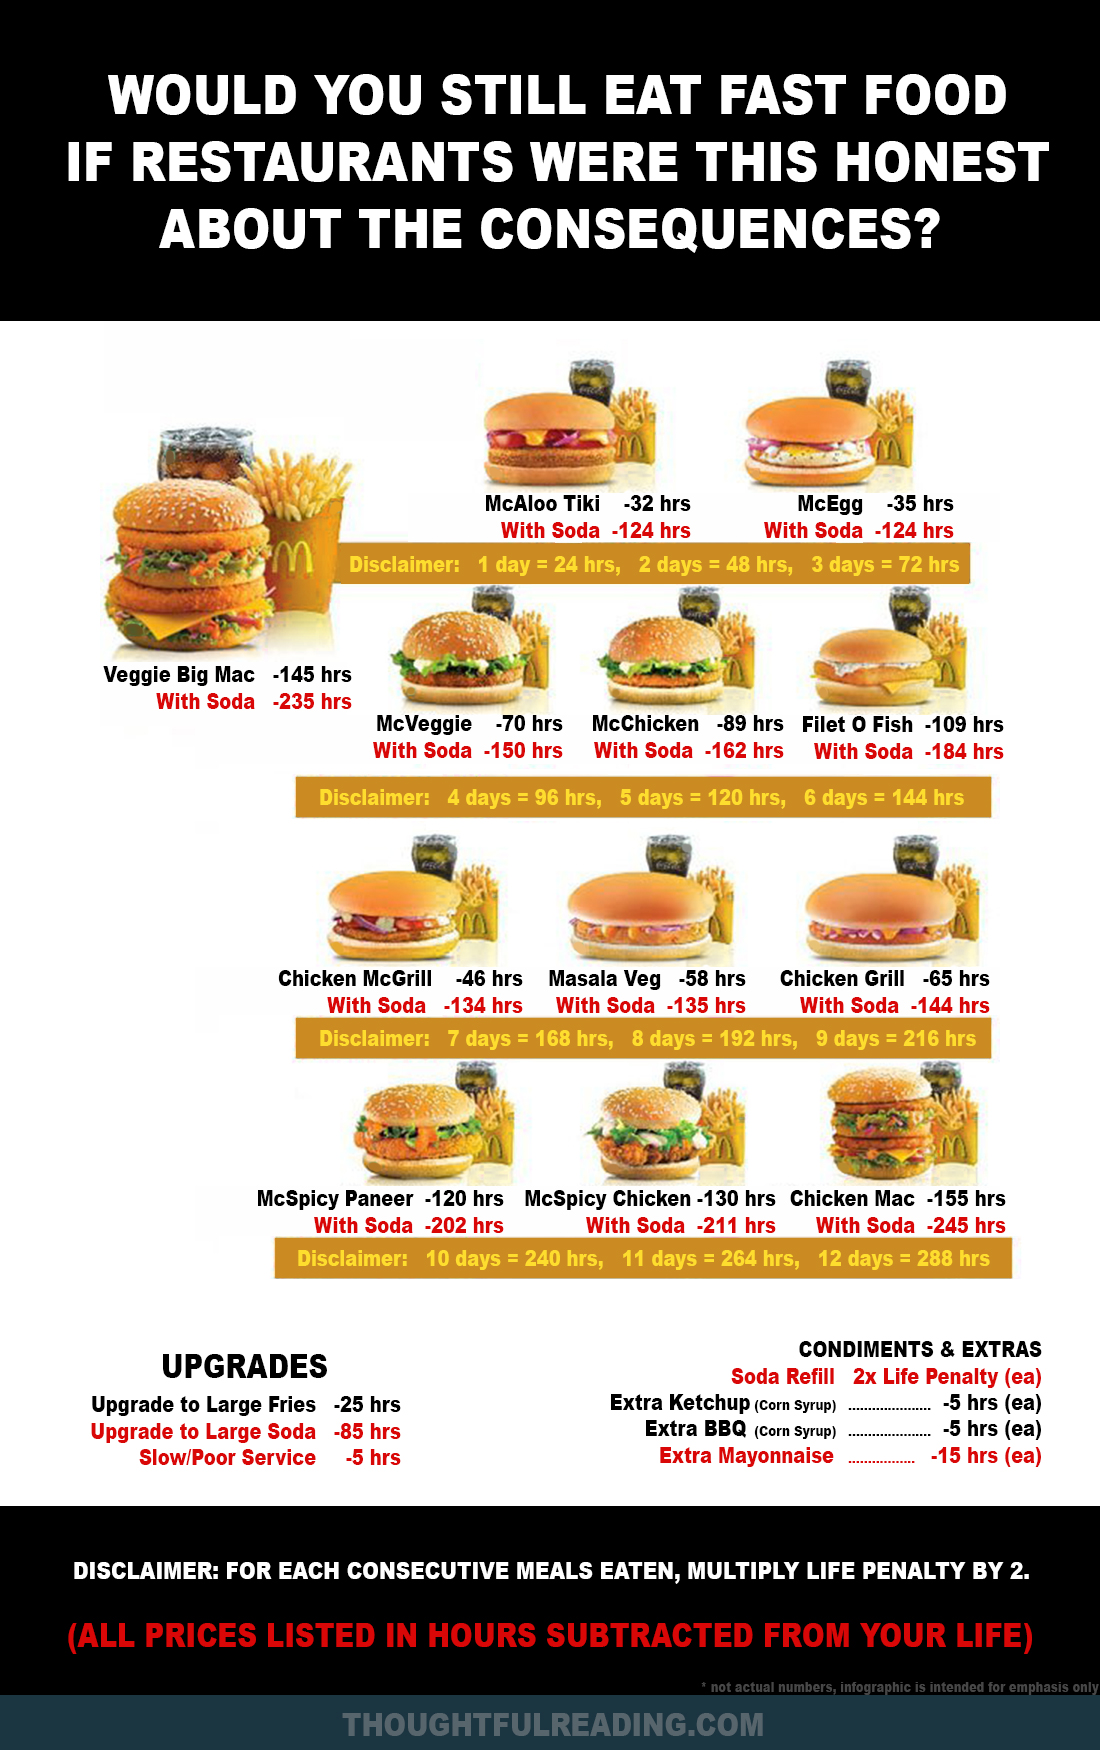 fast-food-infographic